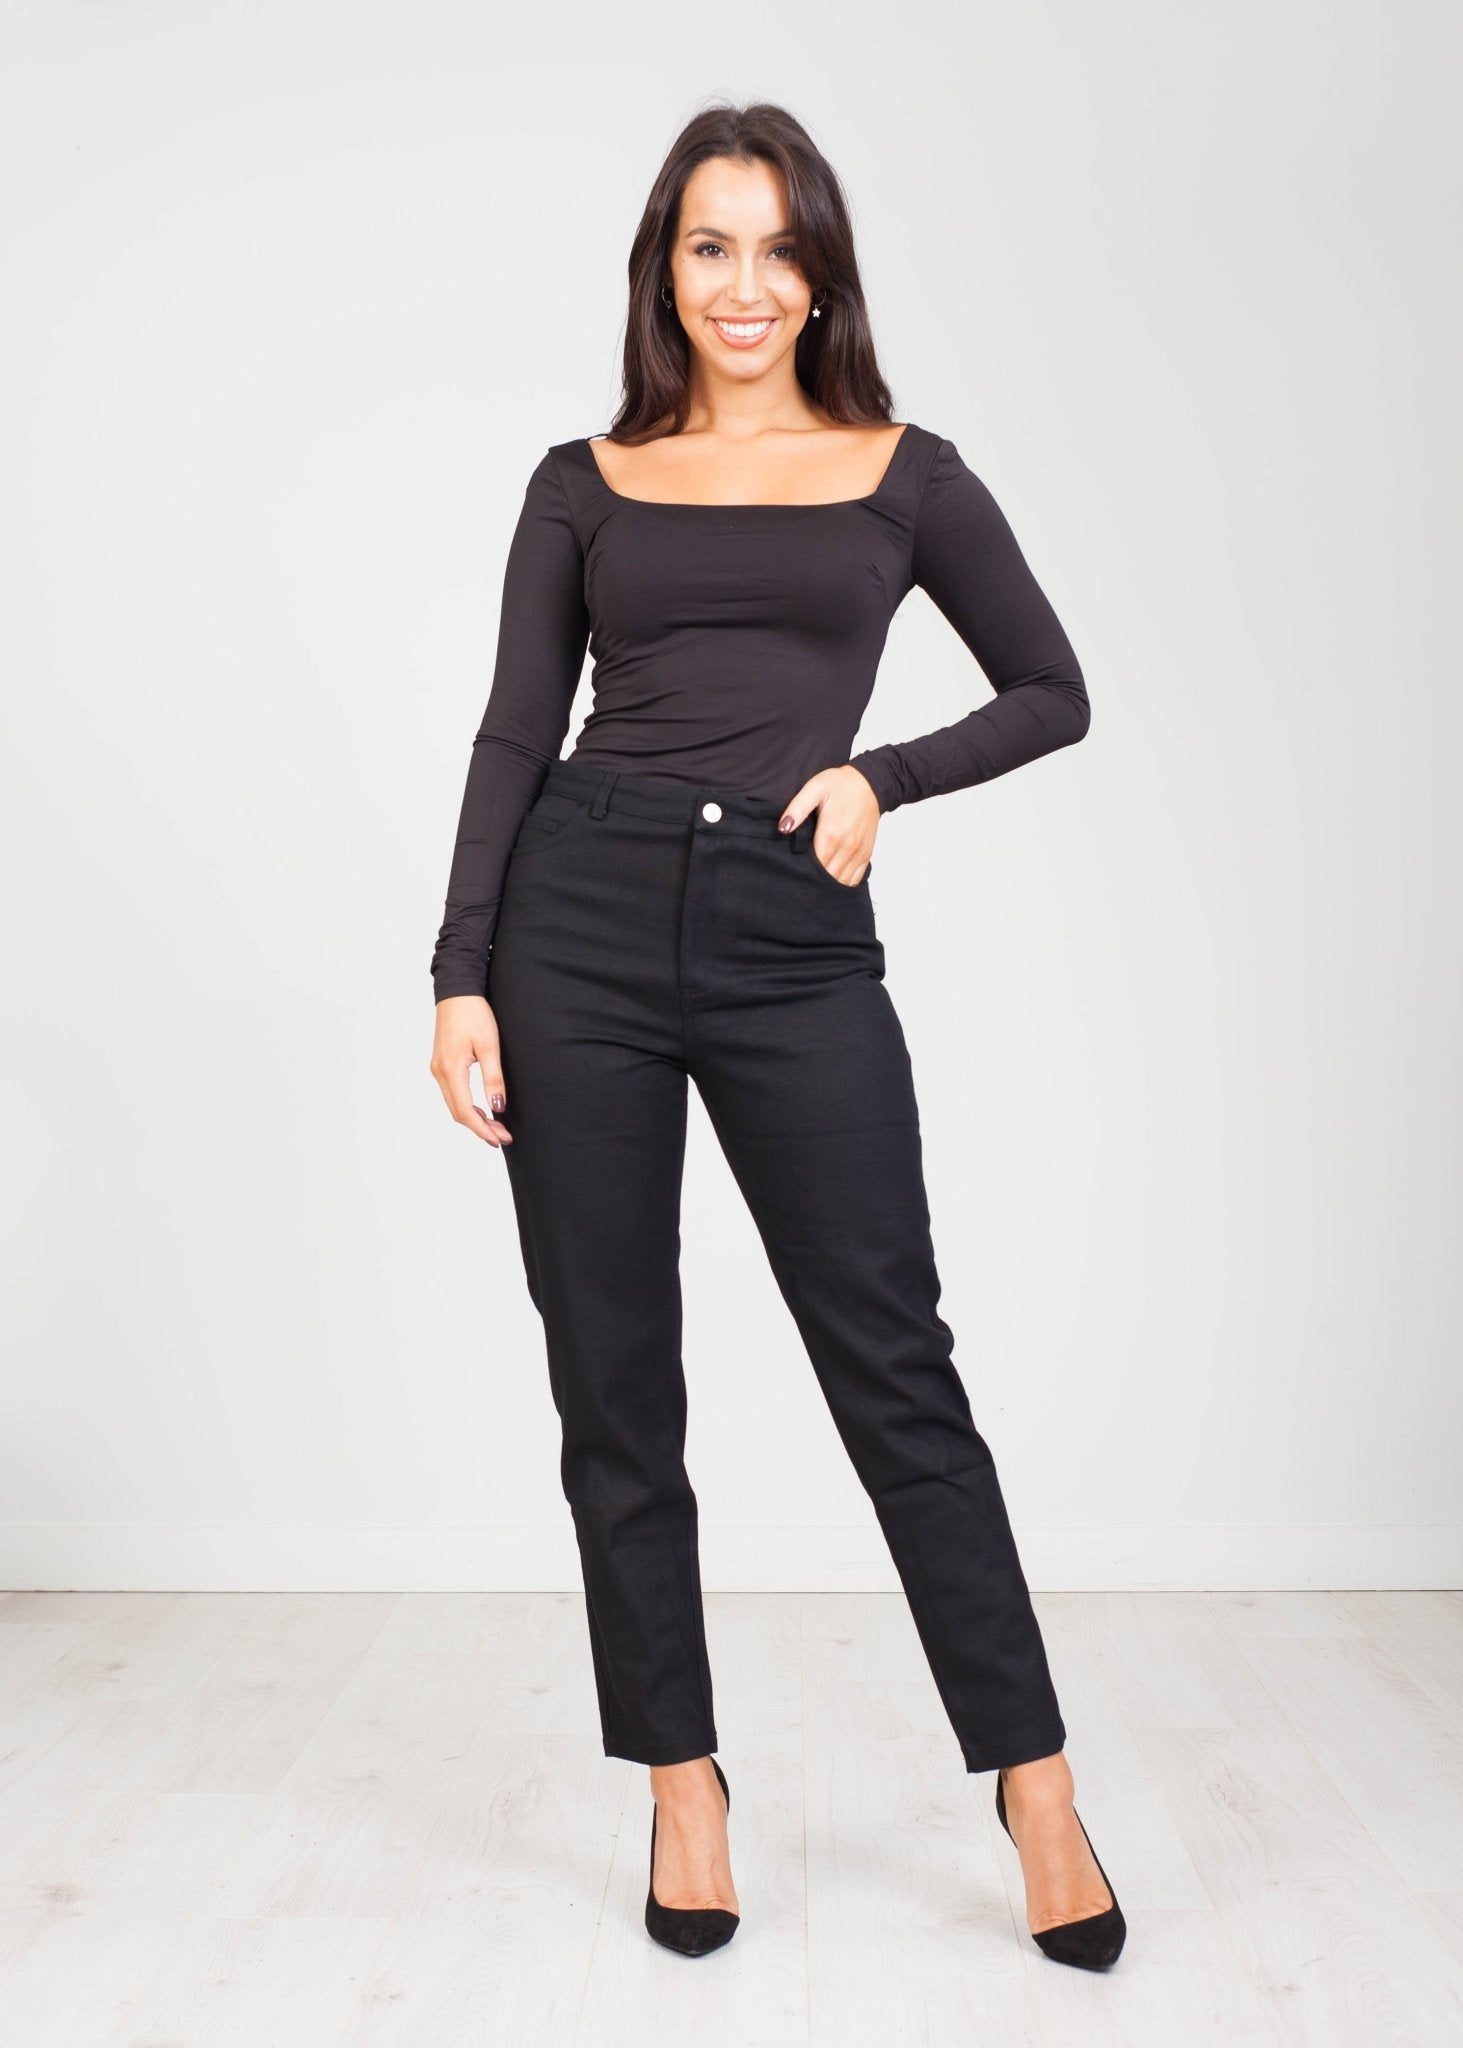 Emilia Square Neck Bodysuit in Black - The Walk in Wardrobe